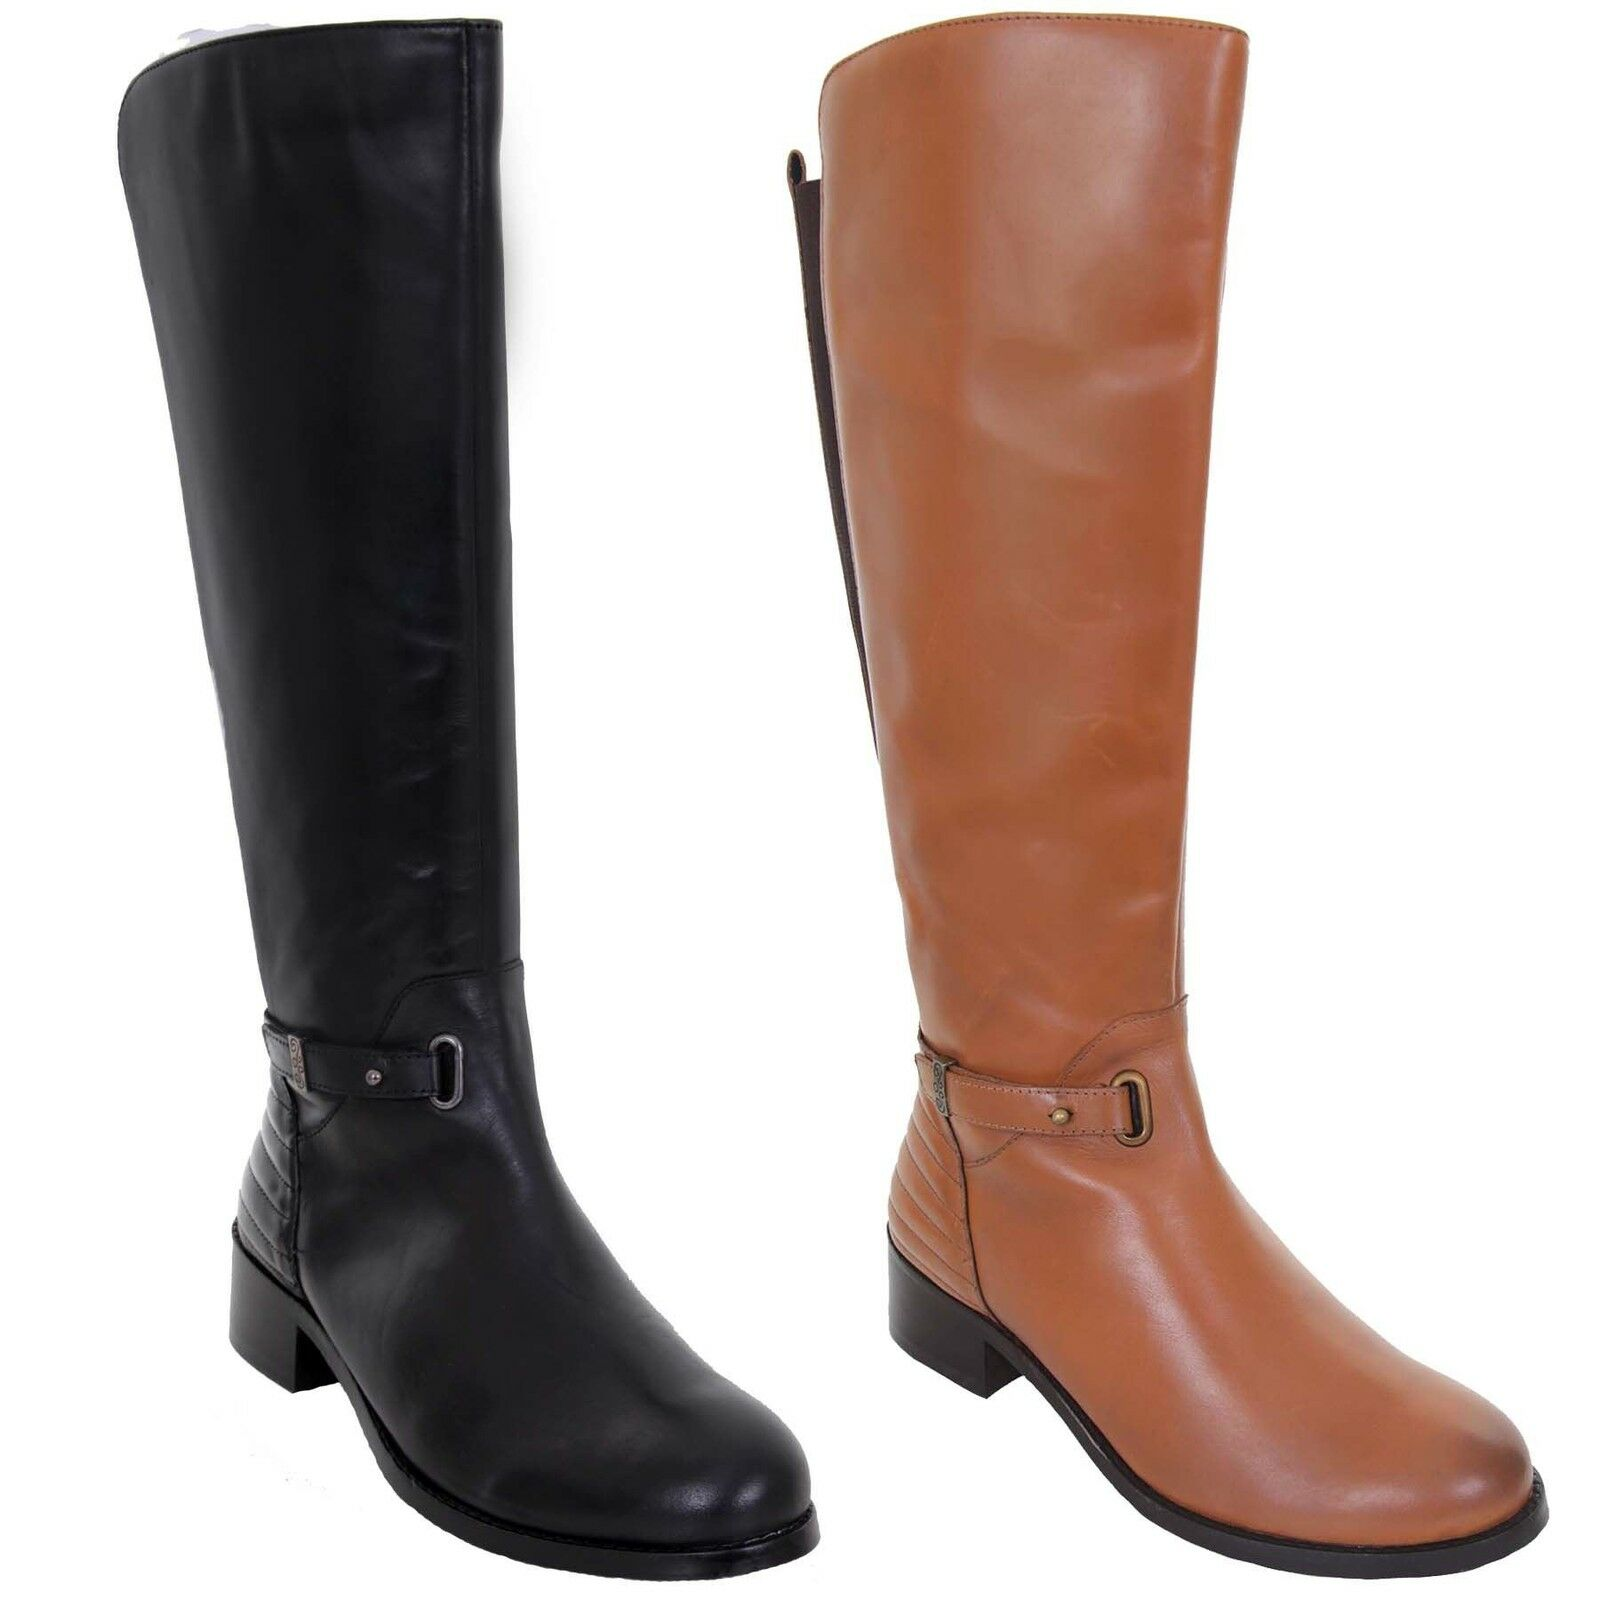 GLH472 Reblack Calf High Zipper Side Elasticated Low Heel Genuine Leather Boots